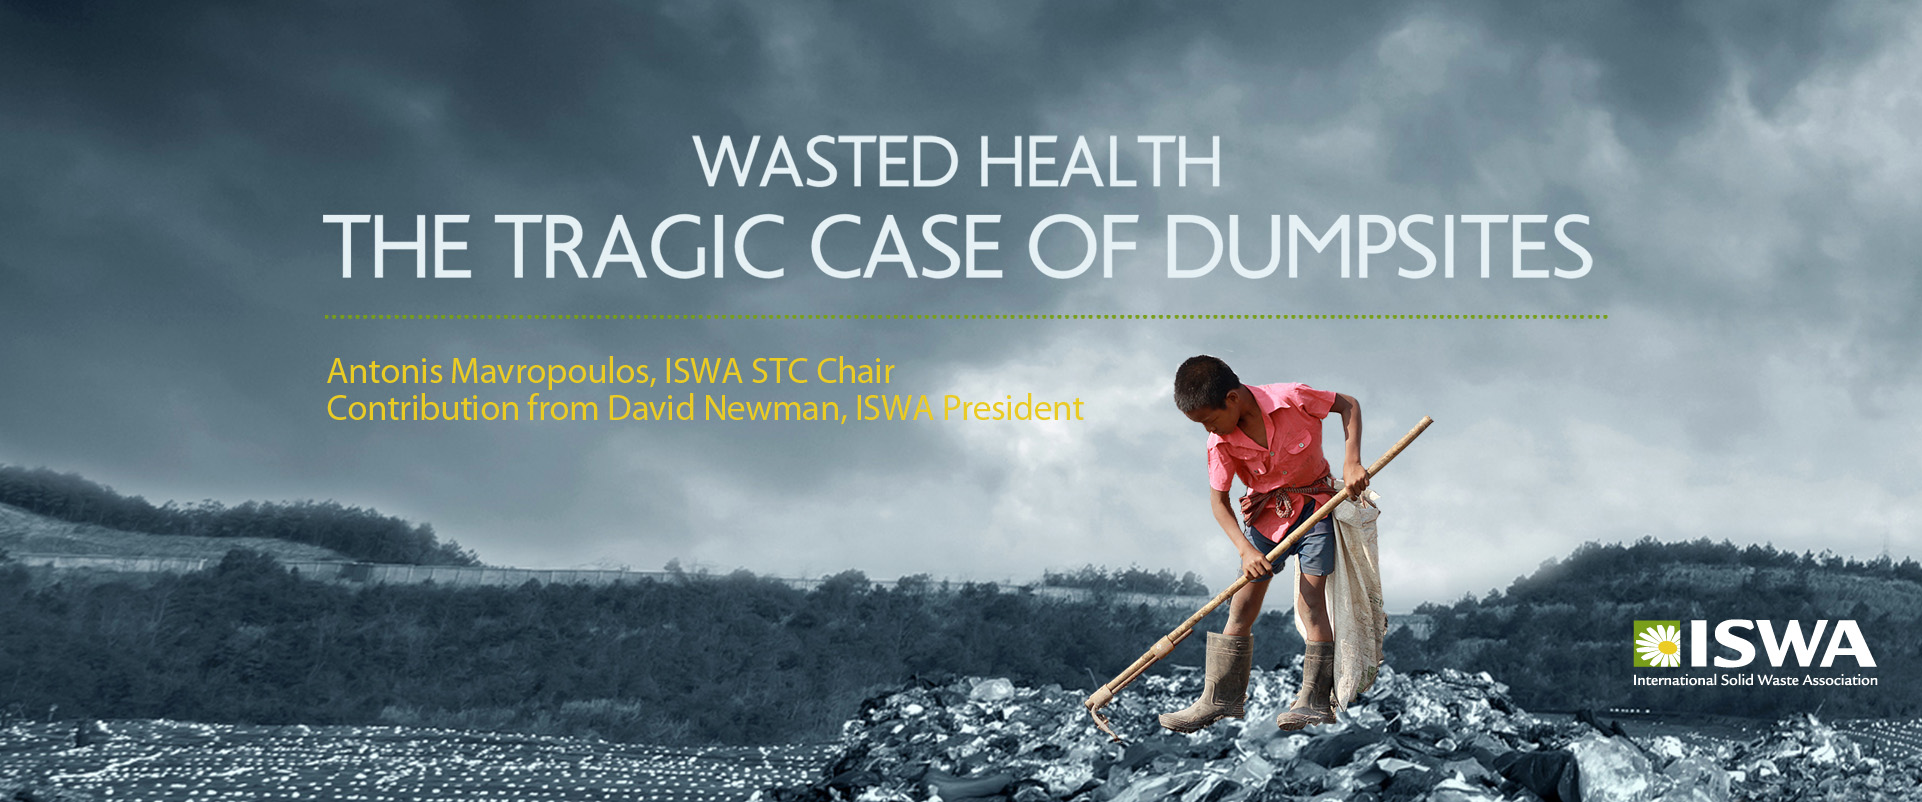 Wasted Health: The Tragic Case of Dumpsites